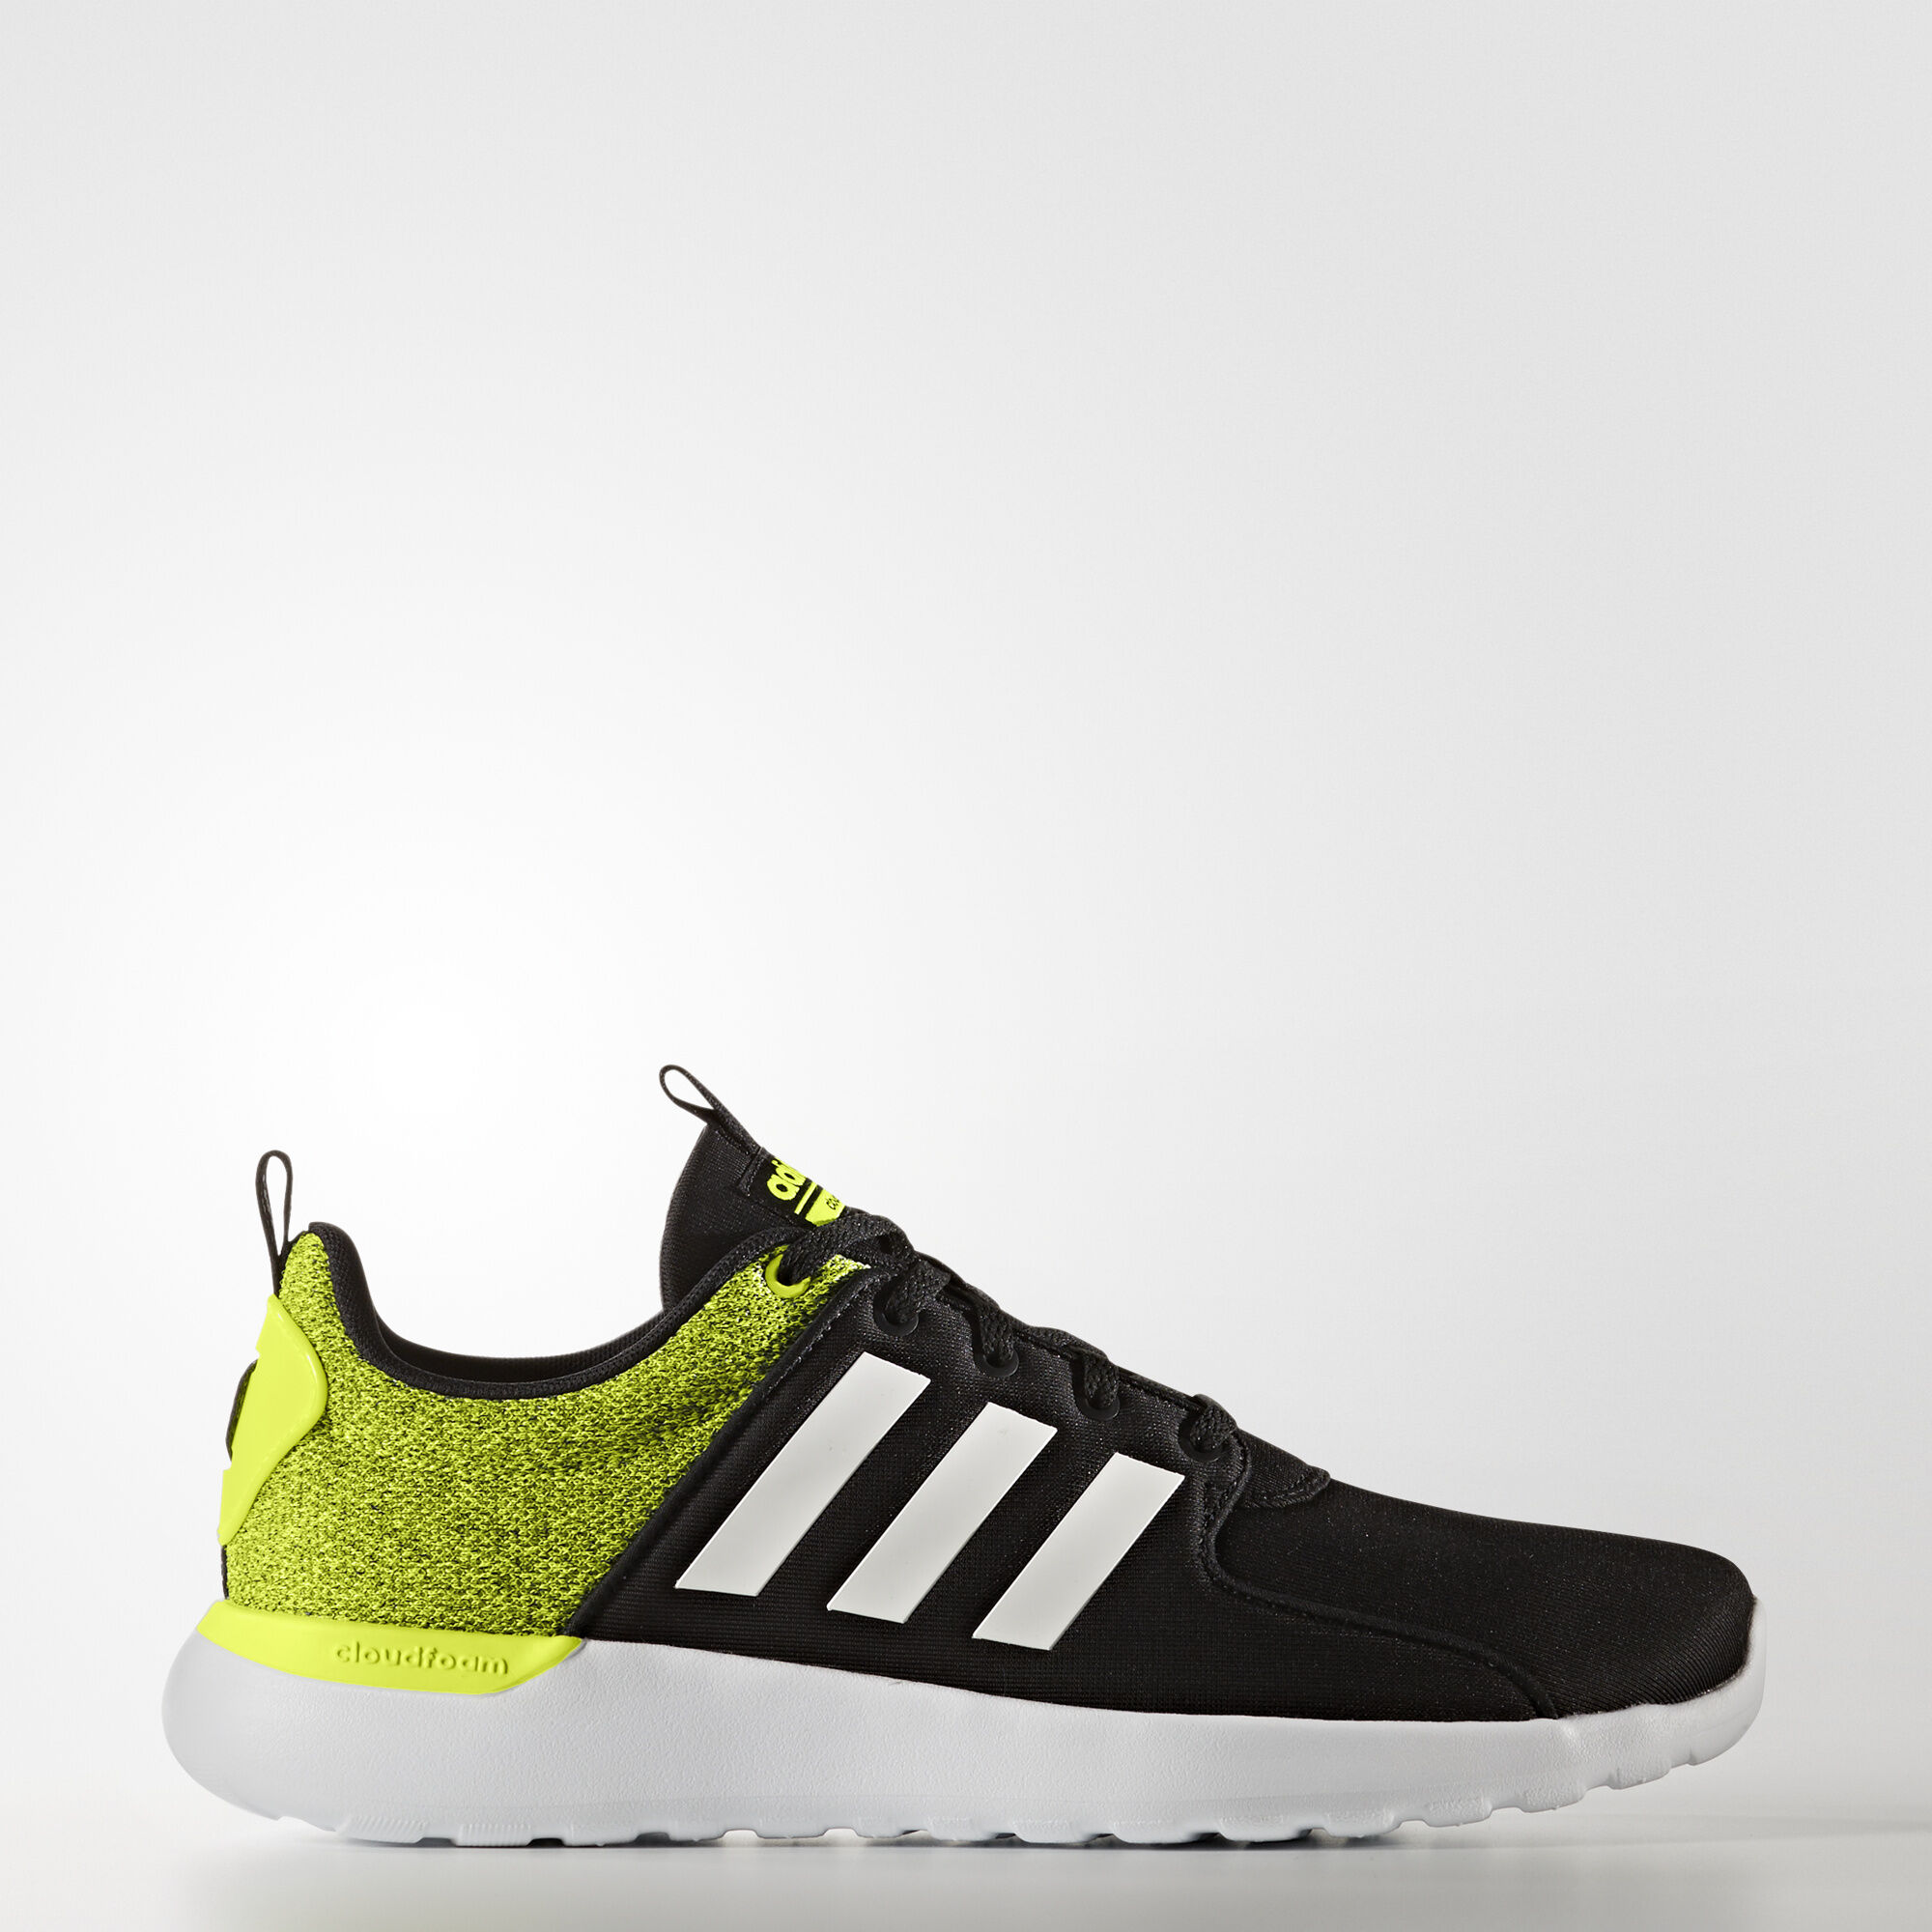 Adidas Cloudfoam Lite Racer Shoes